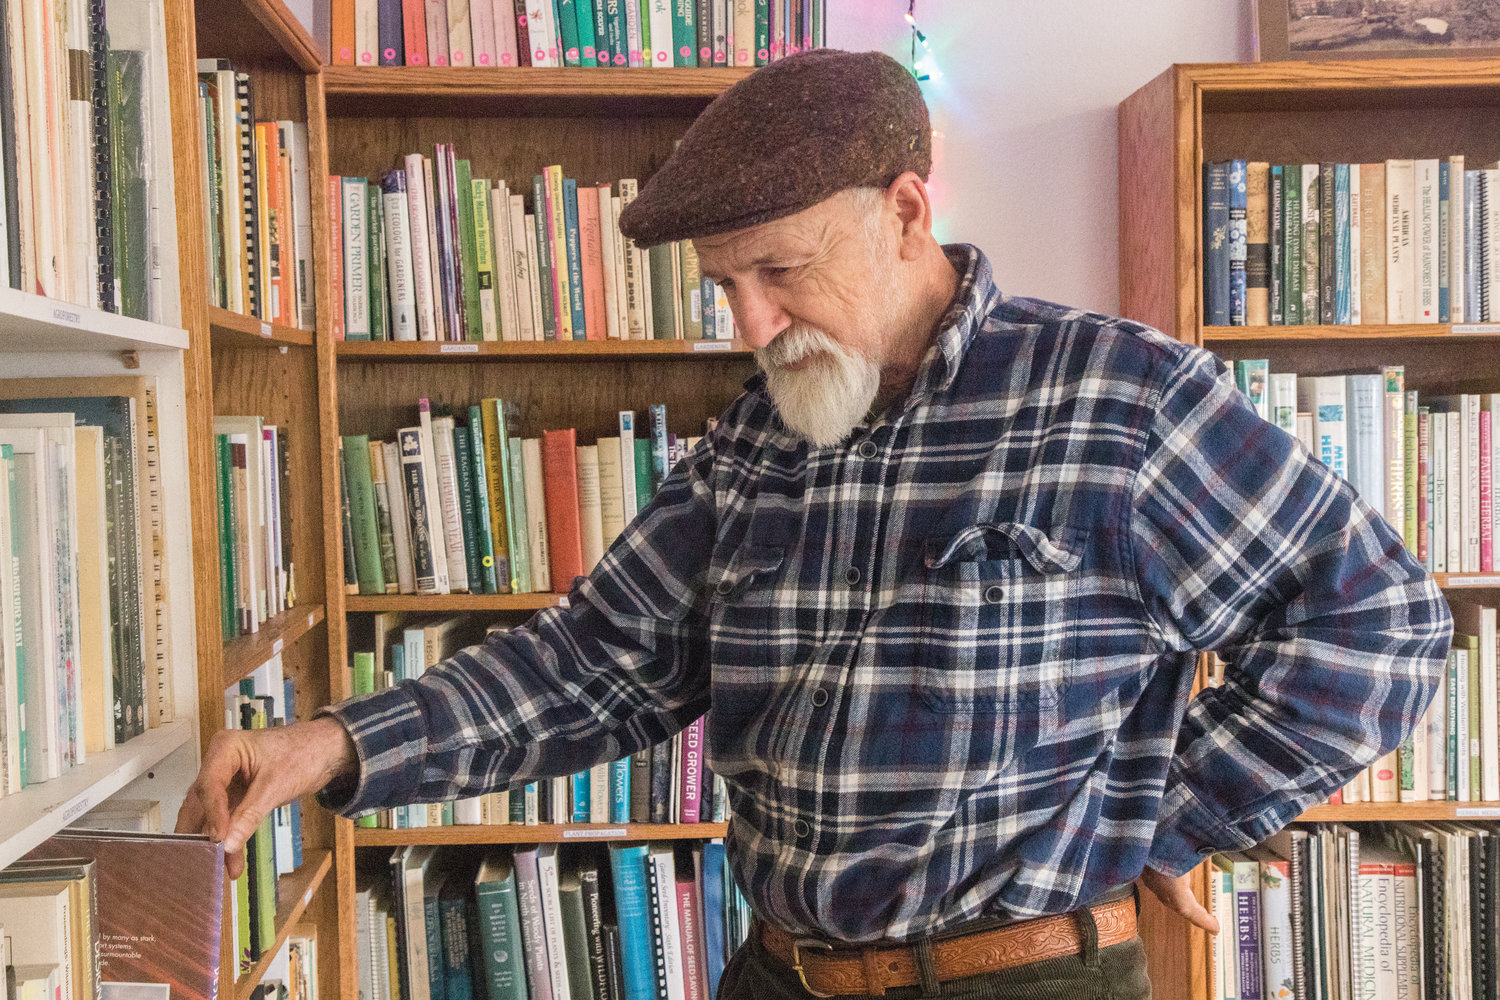 Michael Pilarski, a farmer and advocate for regenerative agriculture, has opened a reference library of books on farming practices, plants, trees, climate and more.